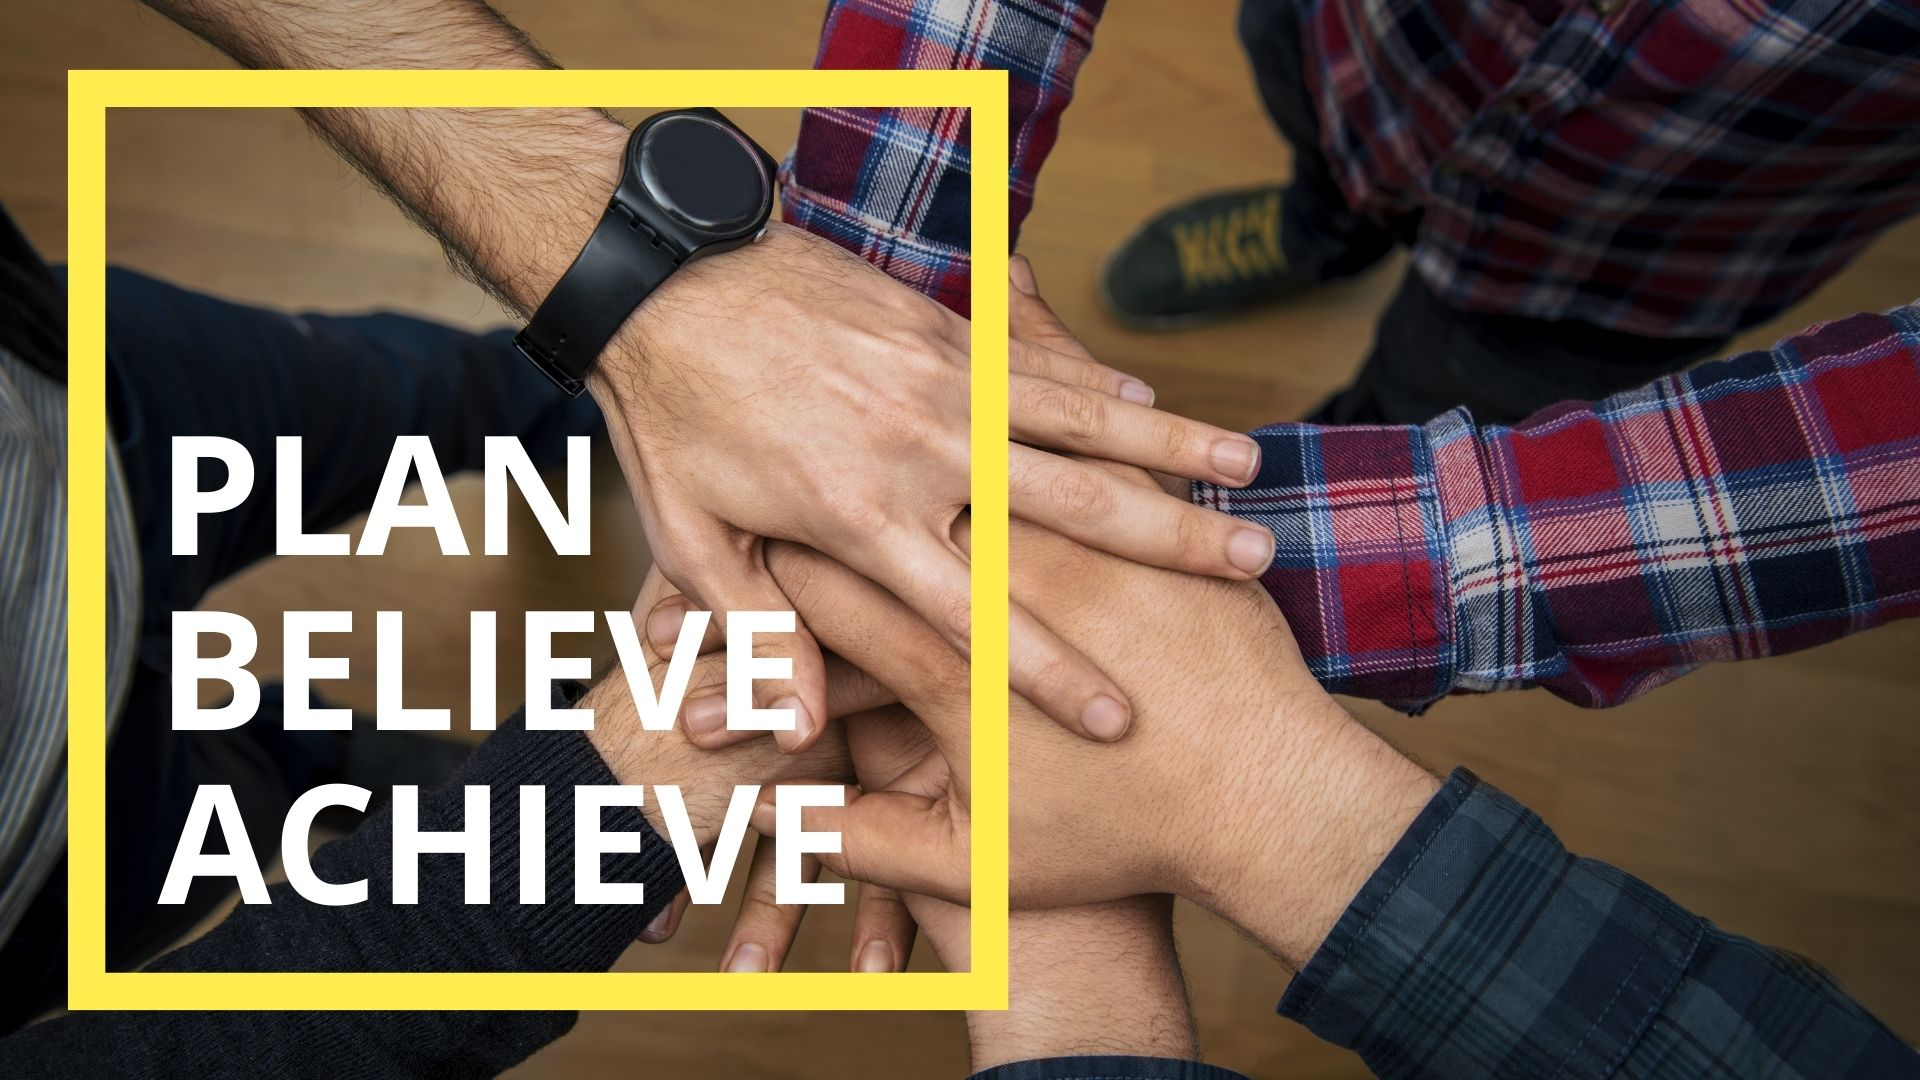 Hands with plan believe achieve in a box